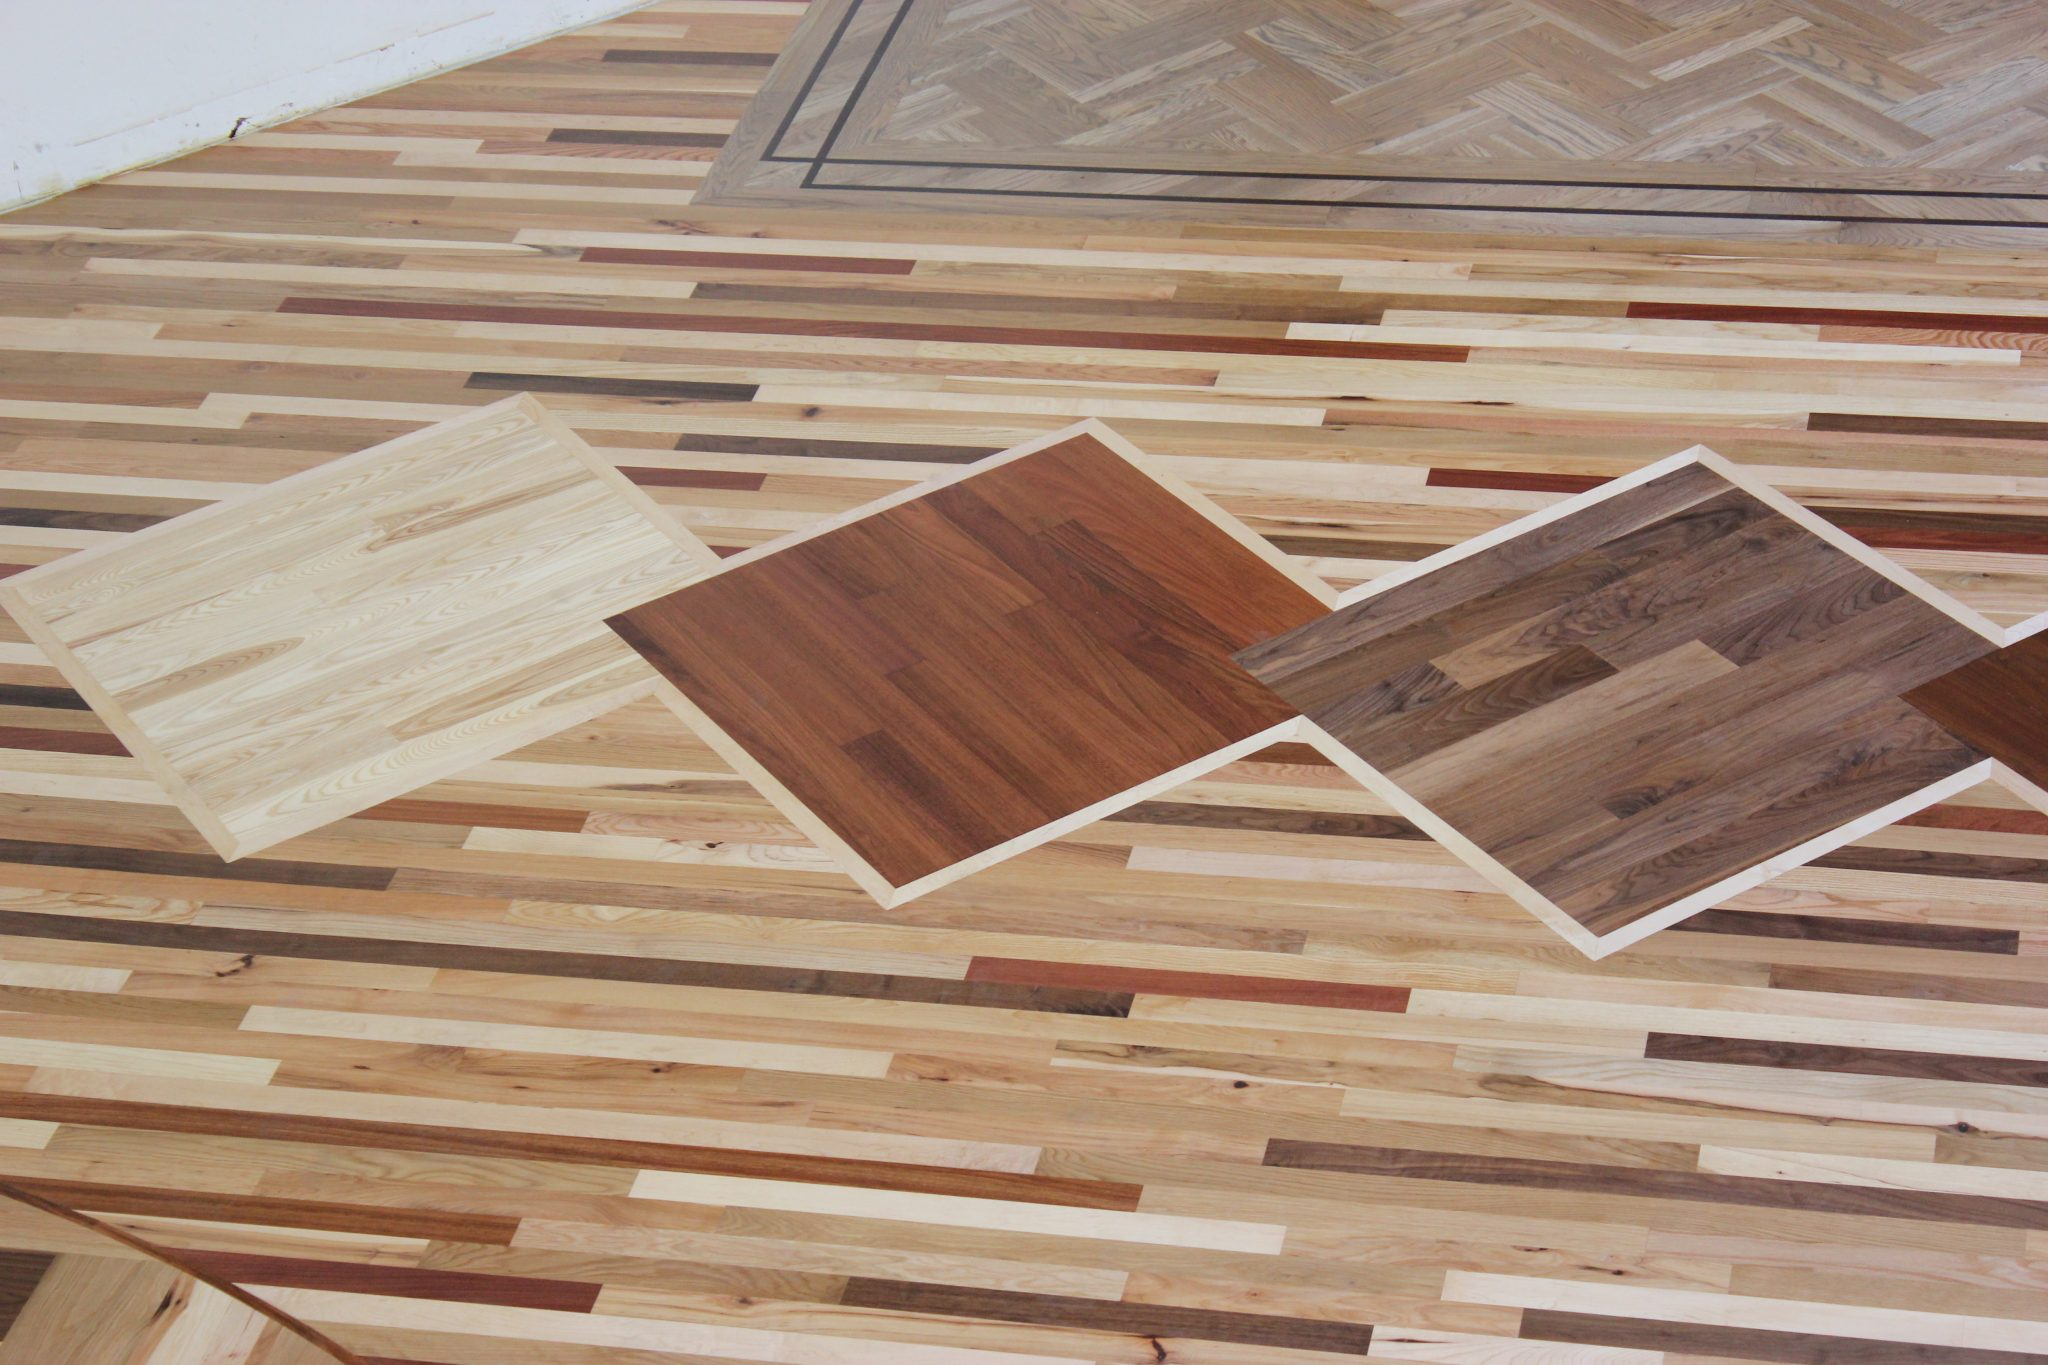 The finished four wood square section   Slaughterbeck Floors